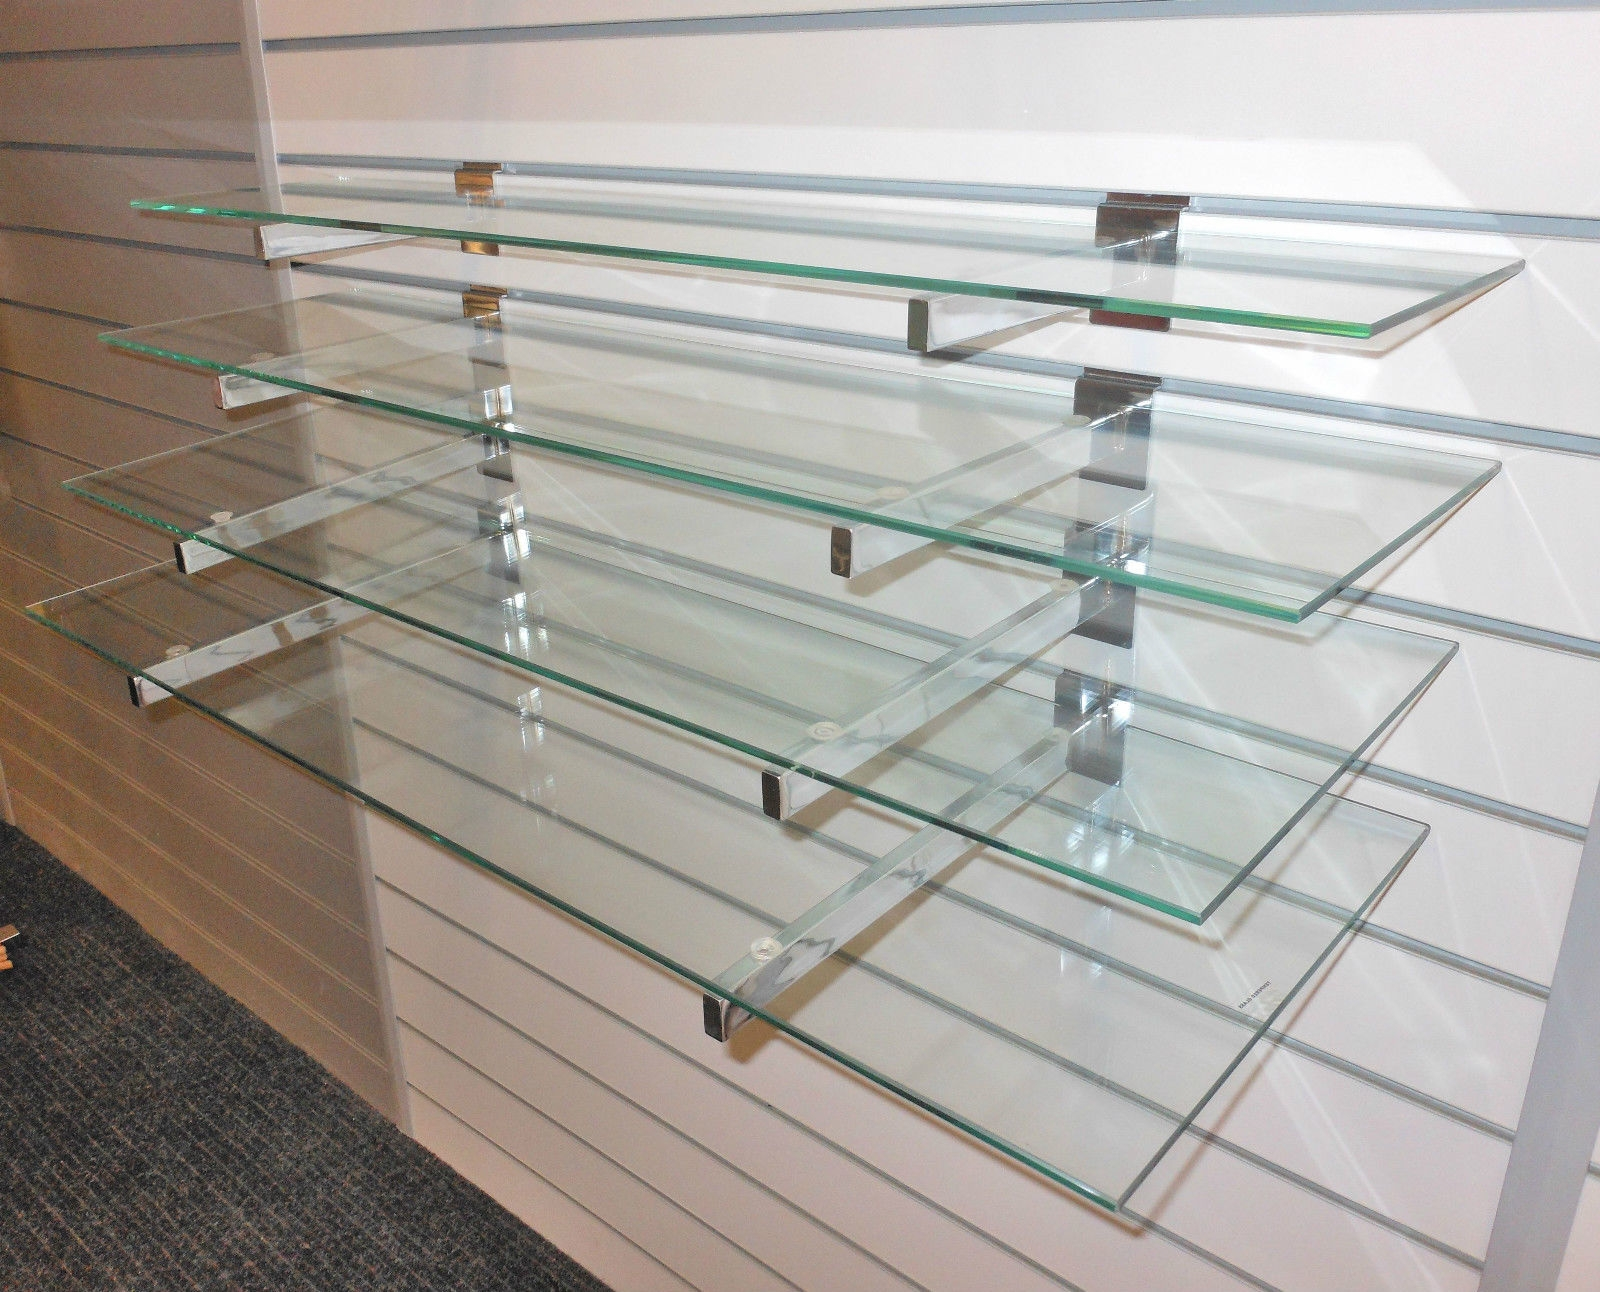 Popular Photo of Smoked Glass Shelves